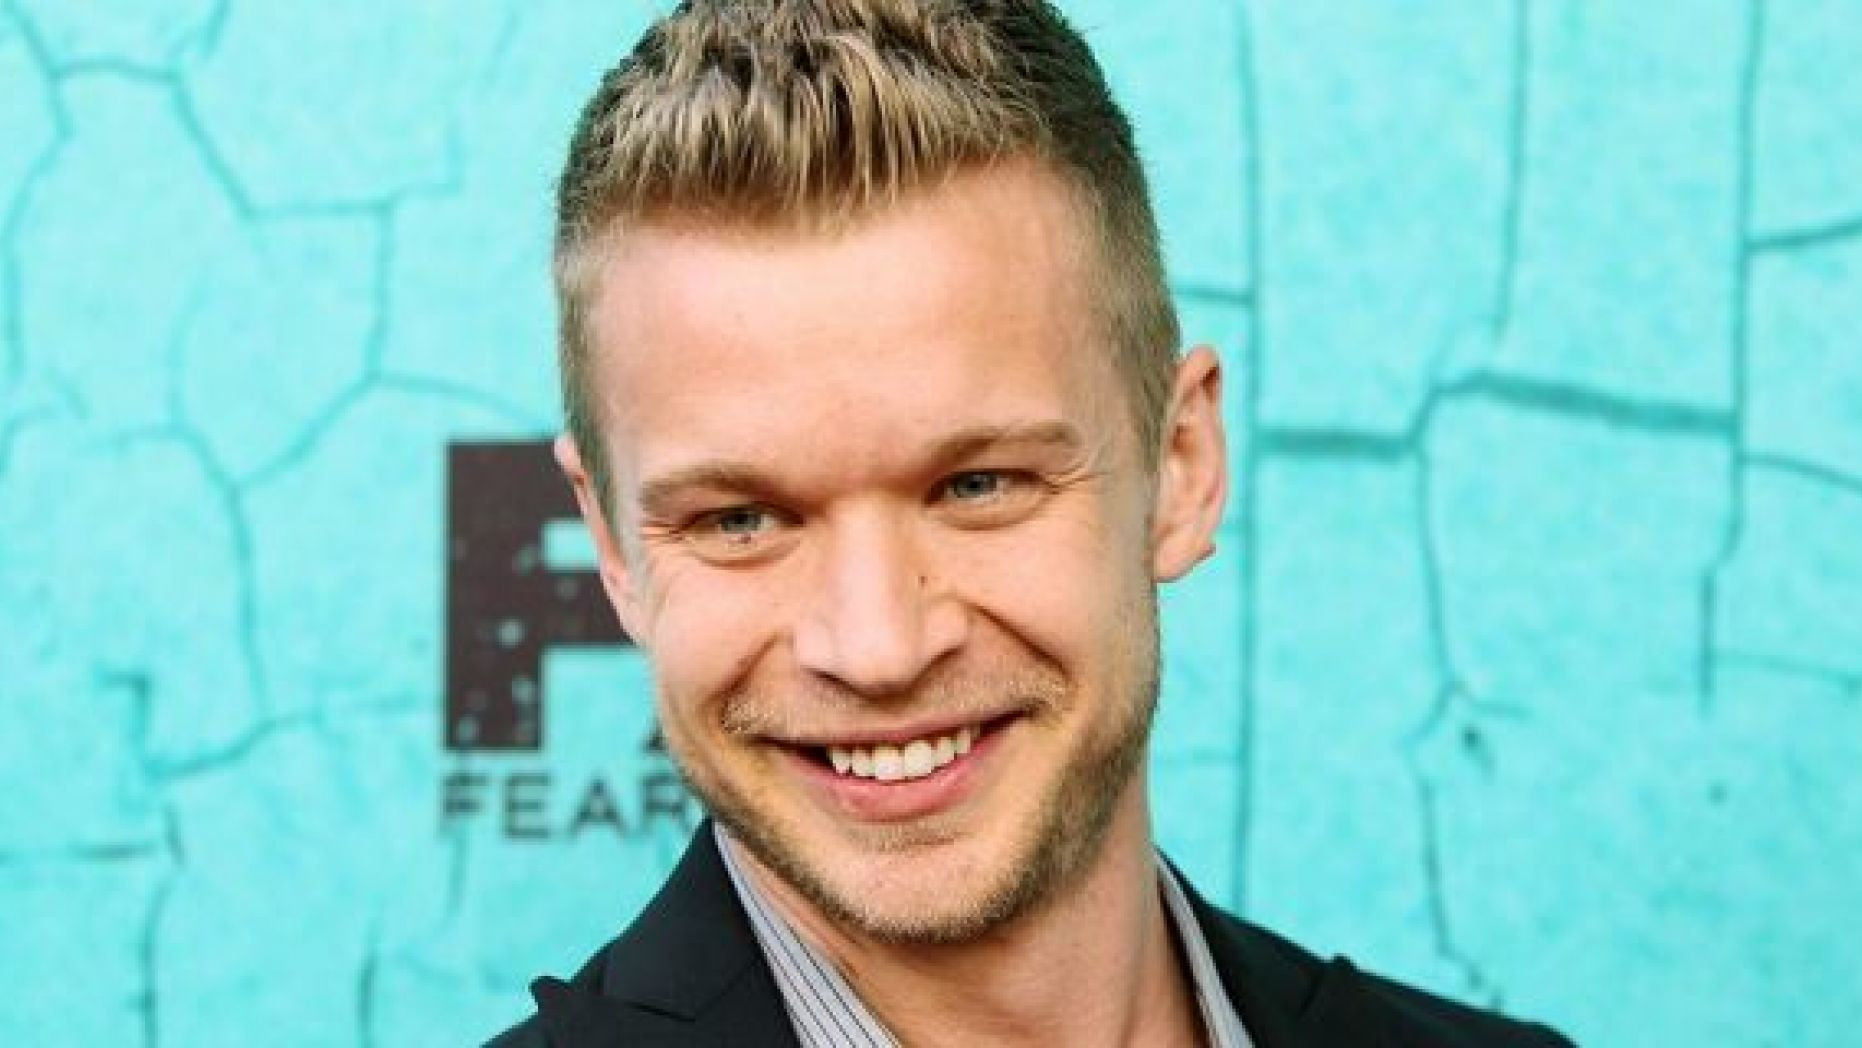 Jesse Luken Bio, Wiki, Arrest, Drunk Driving, Net Worth, Age, Height